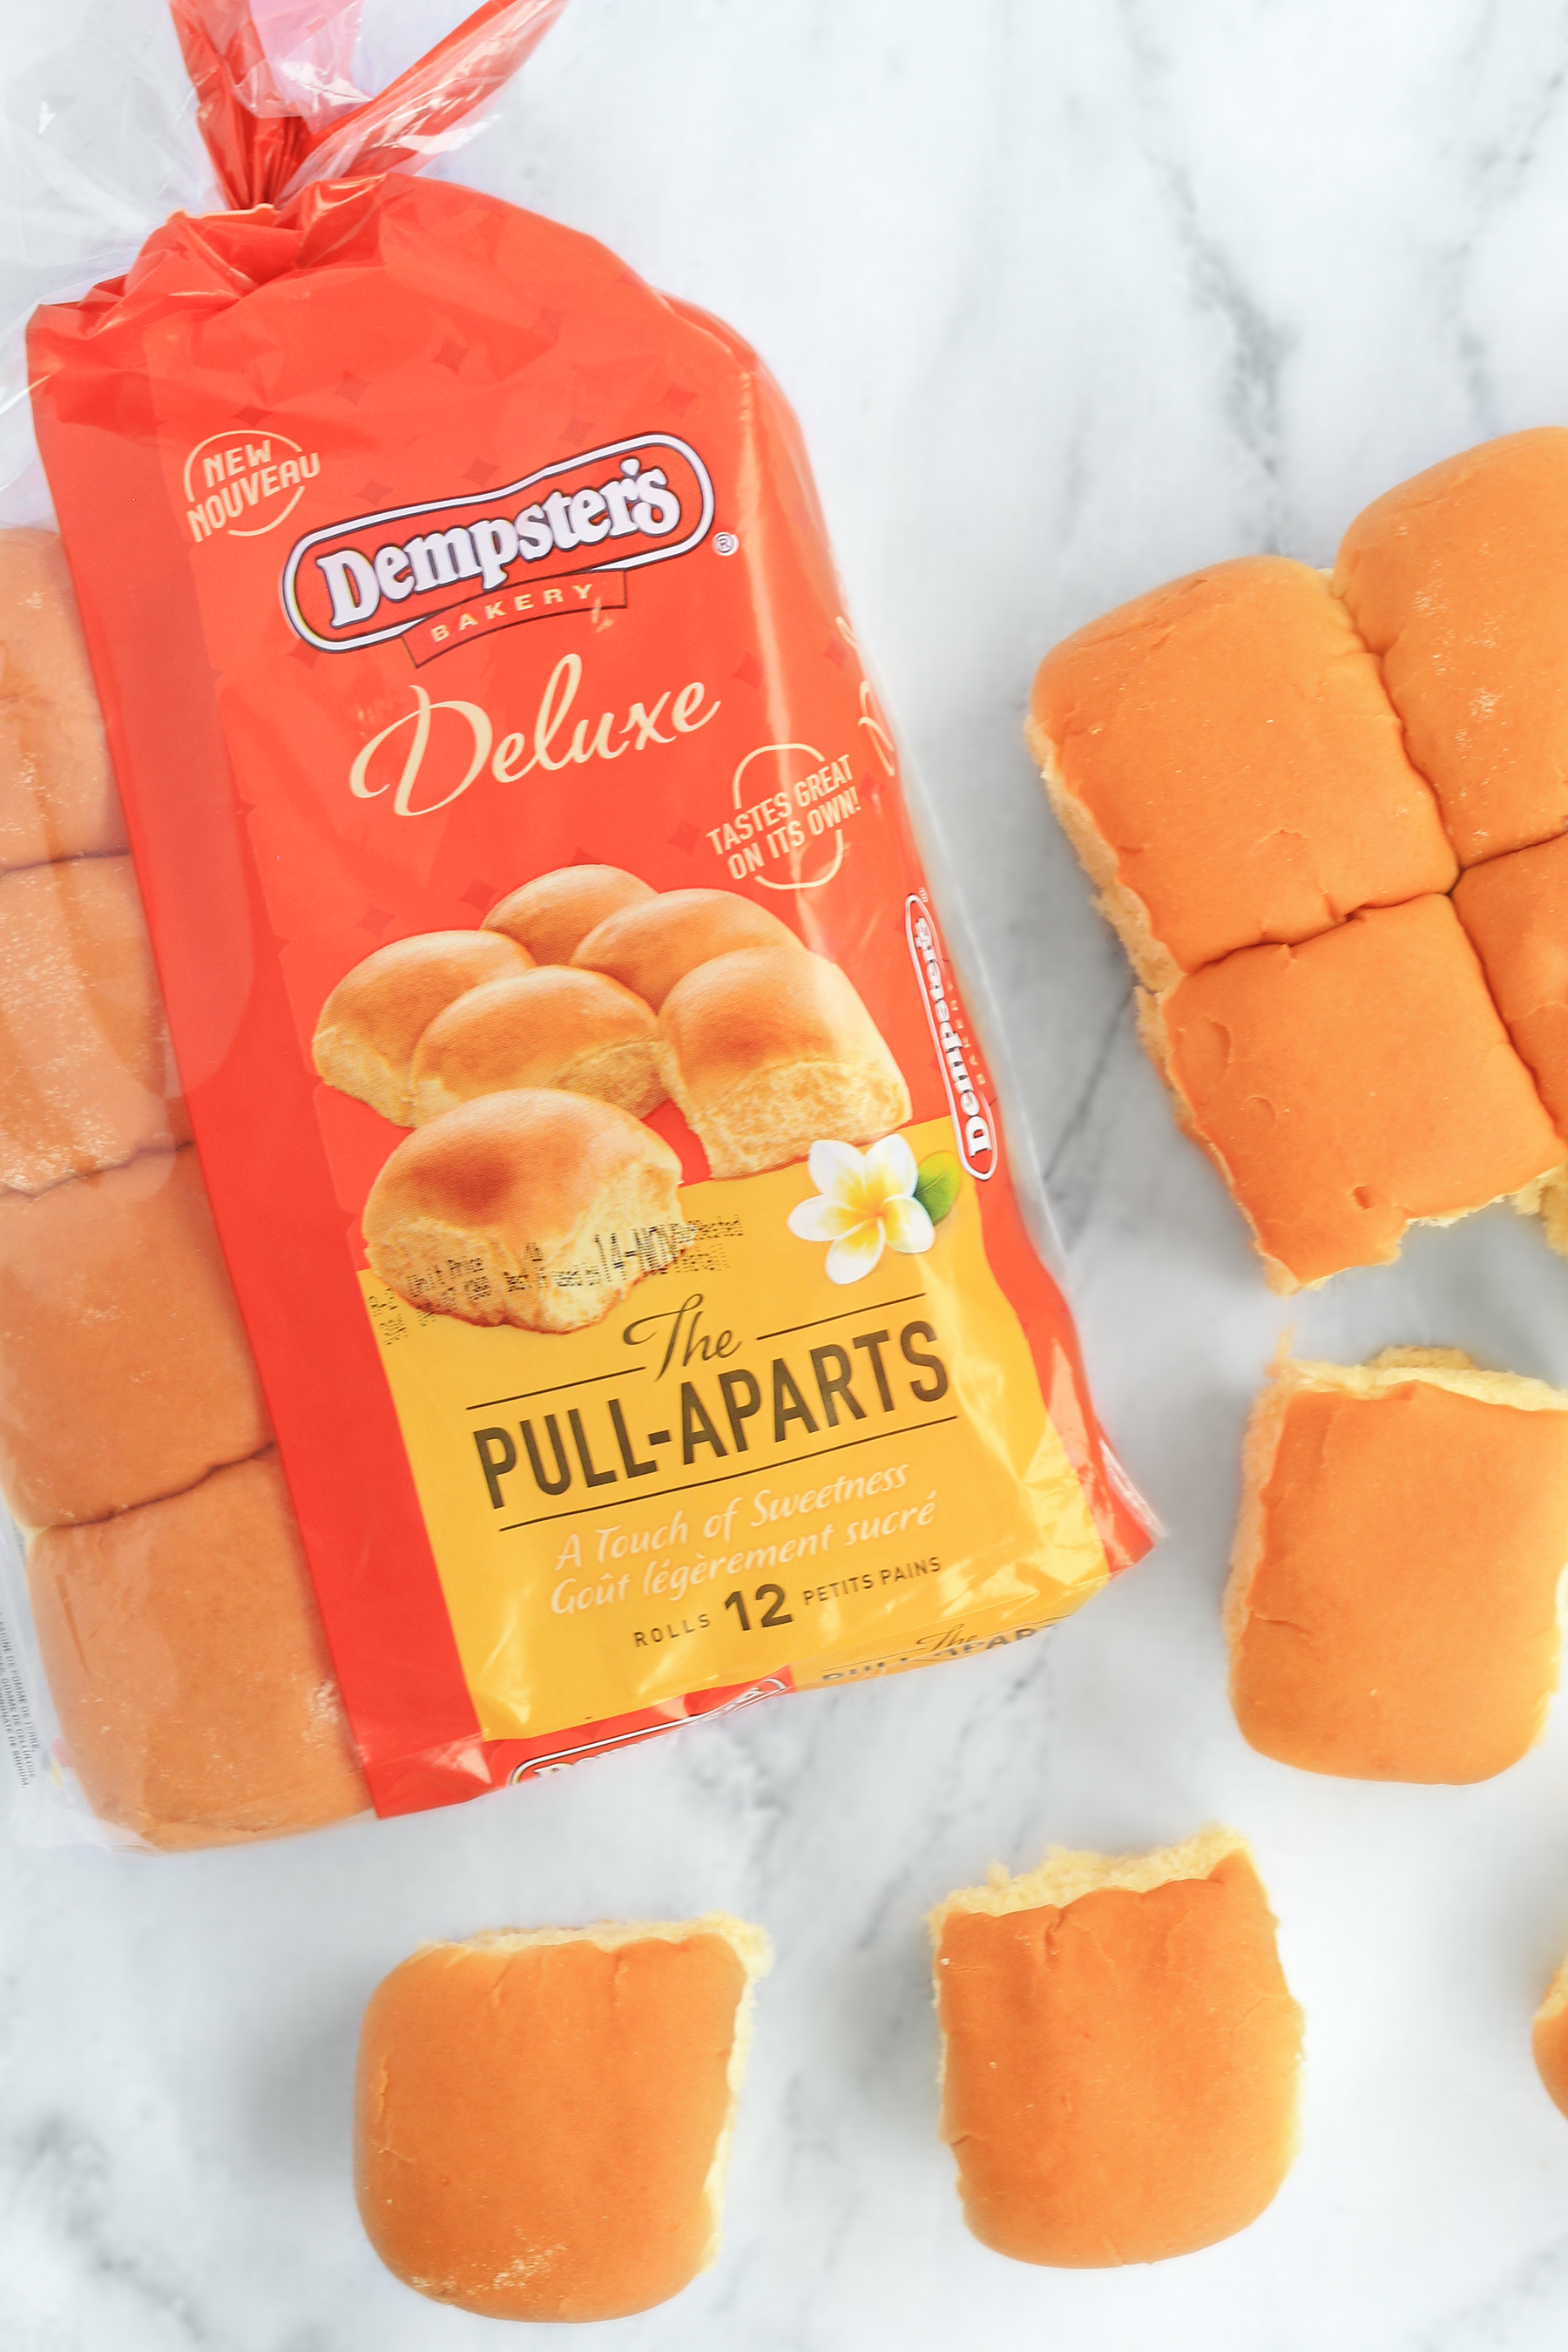 Dempster's Pull-Aparts